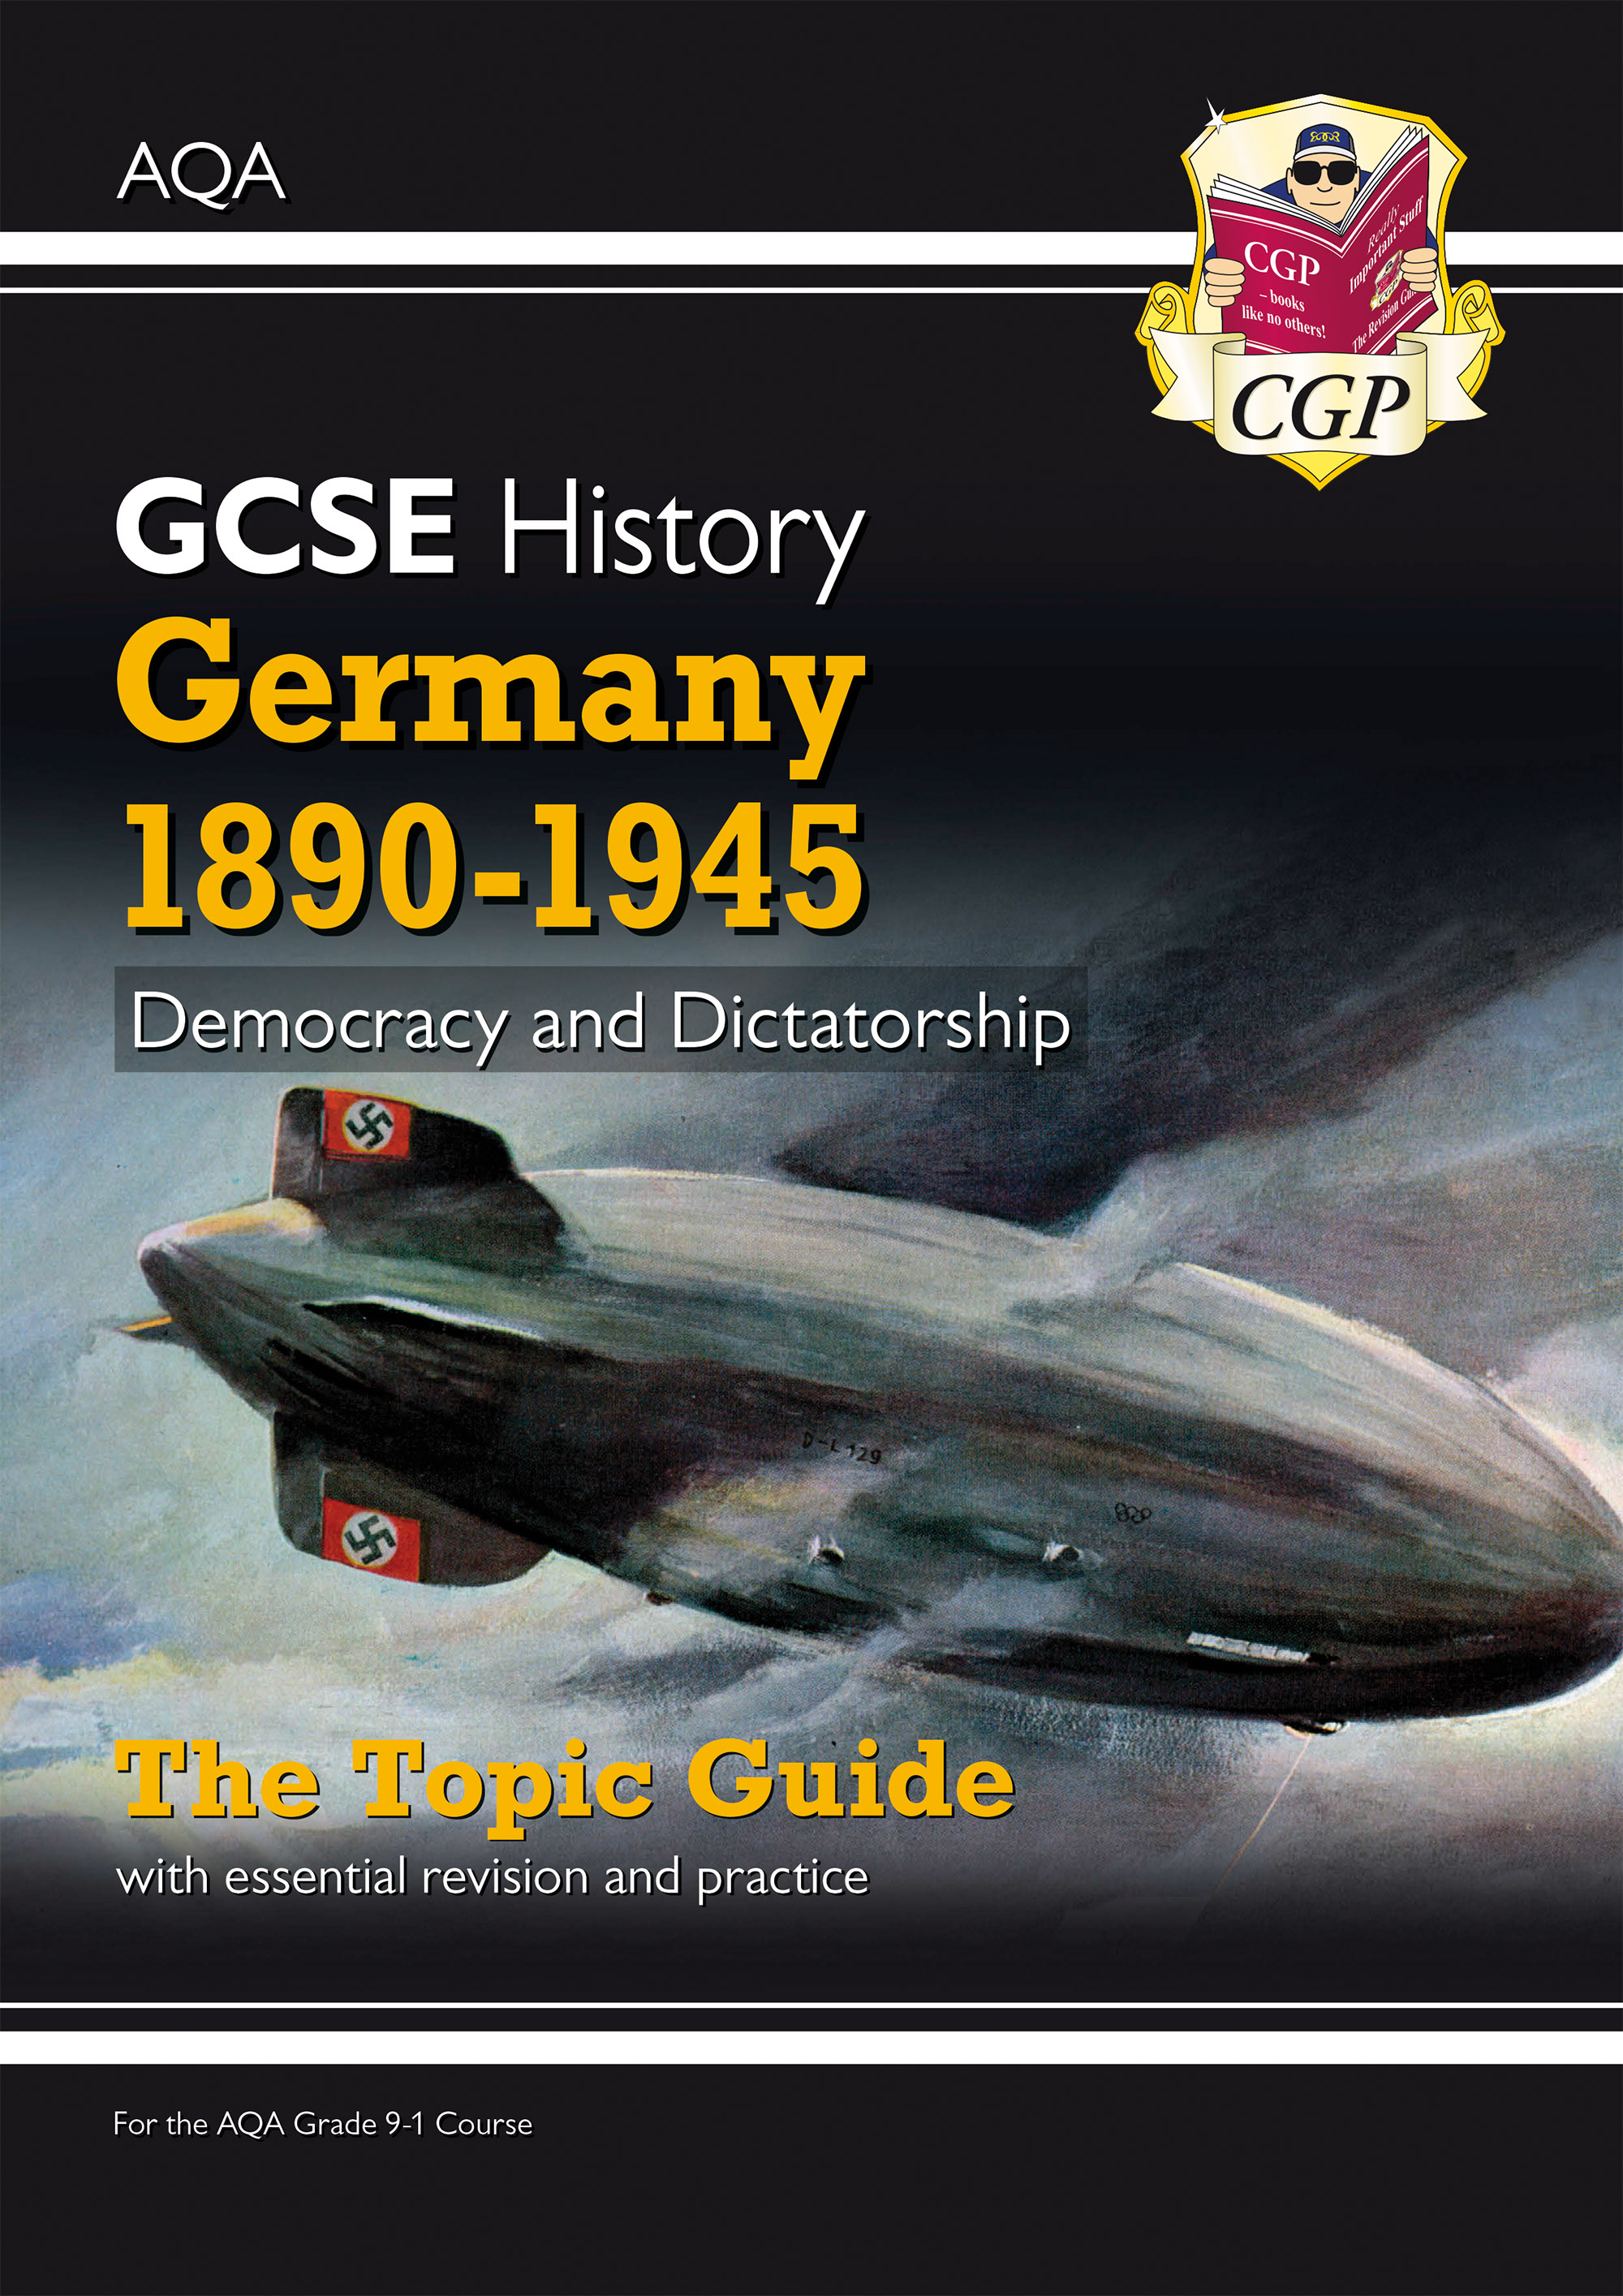 HAGEO41D - New Grade 9-1 GCSE History AQA Topic Guide - Germany, 1890-1945: Democracy and Dictatorsh